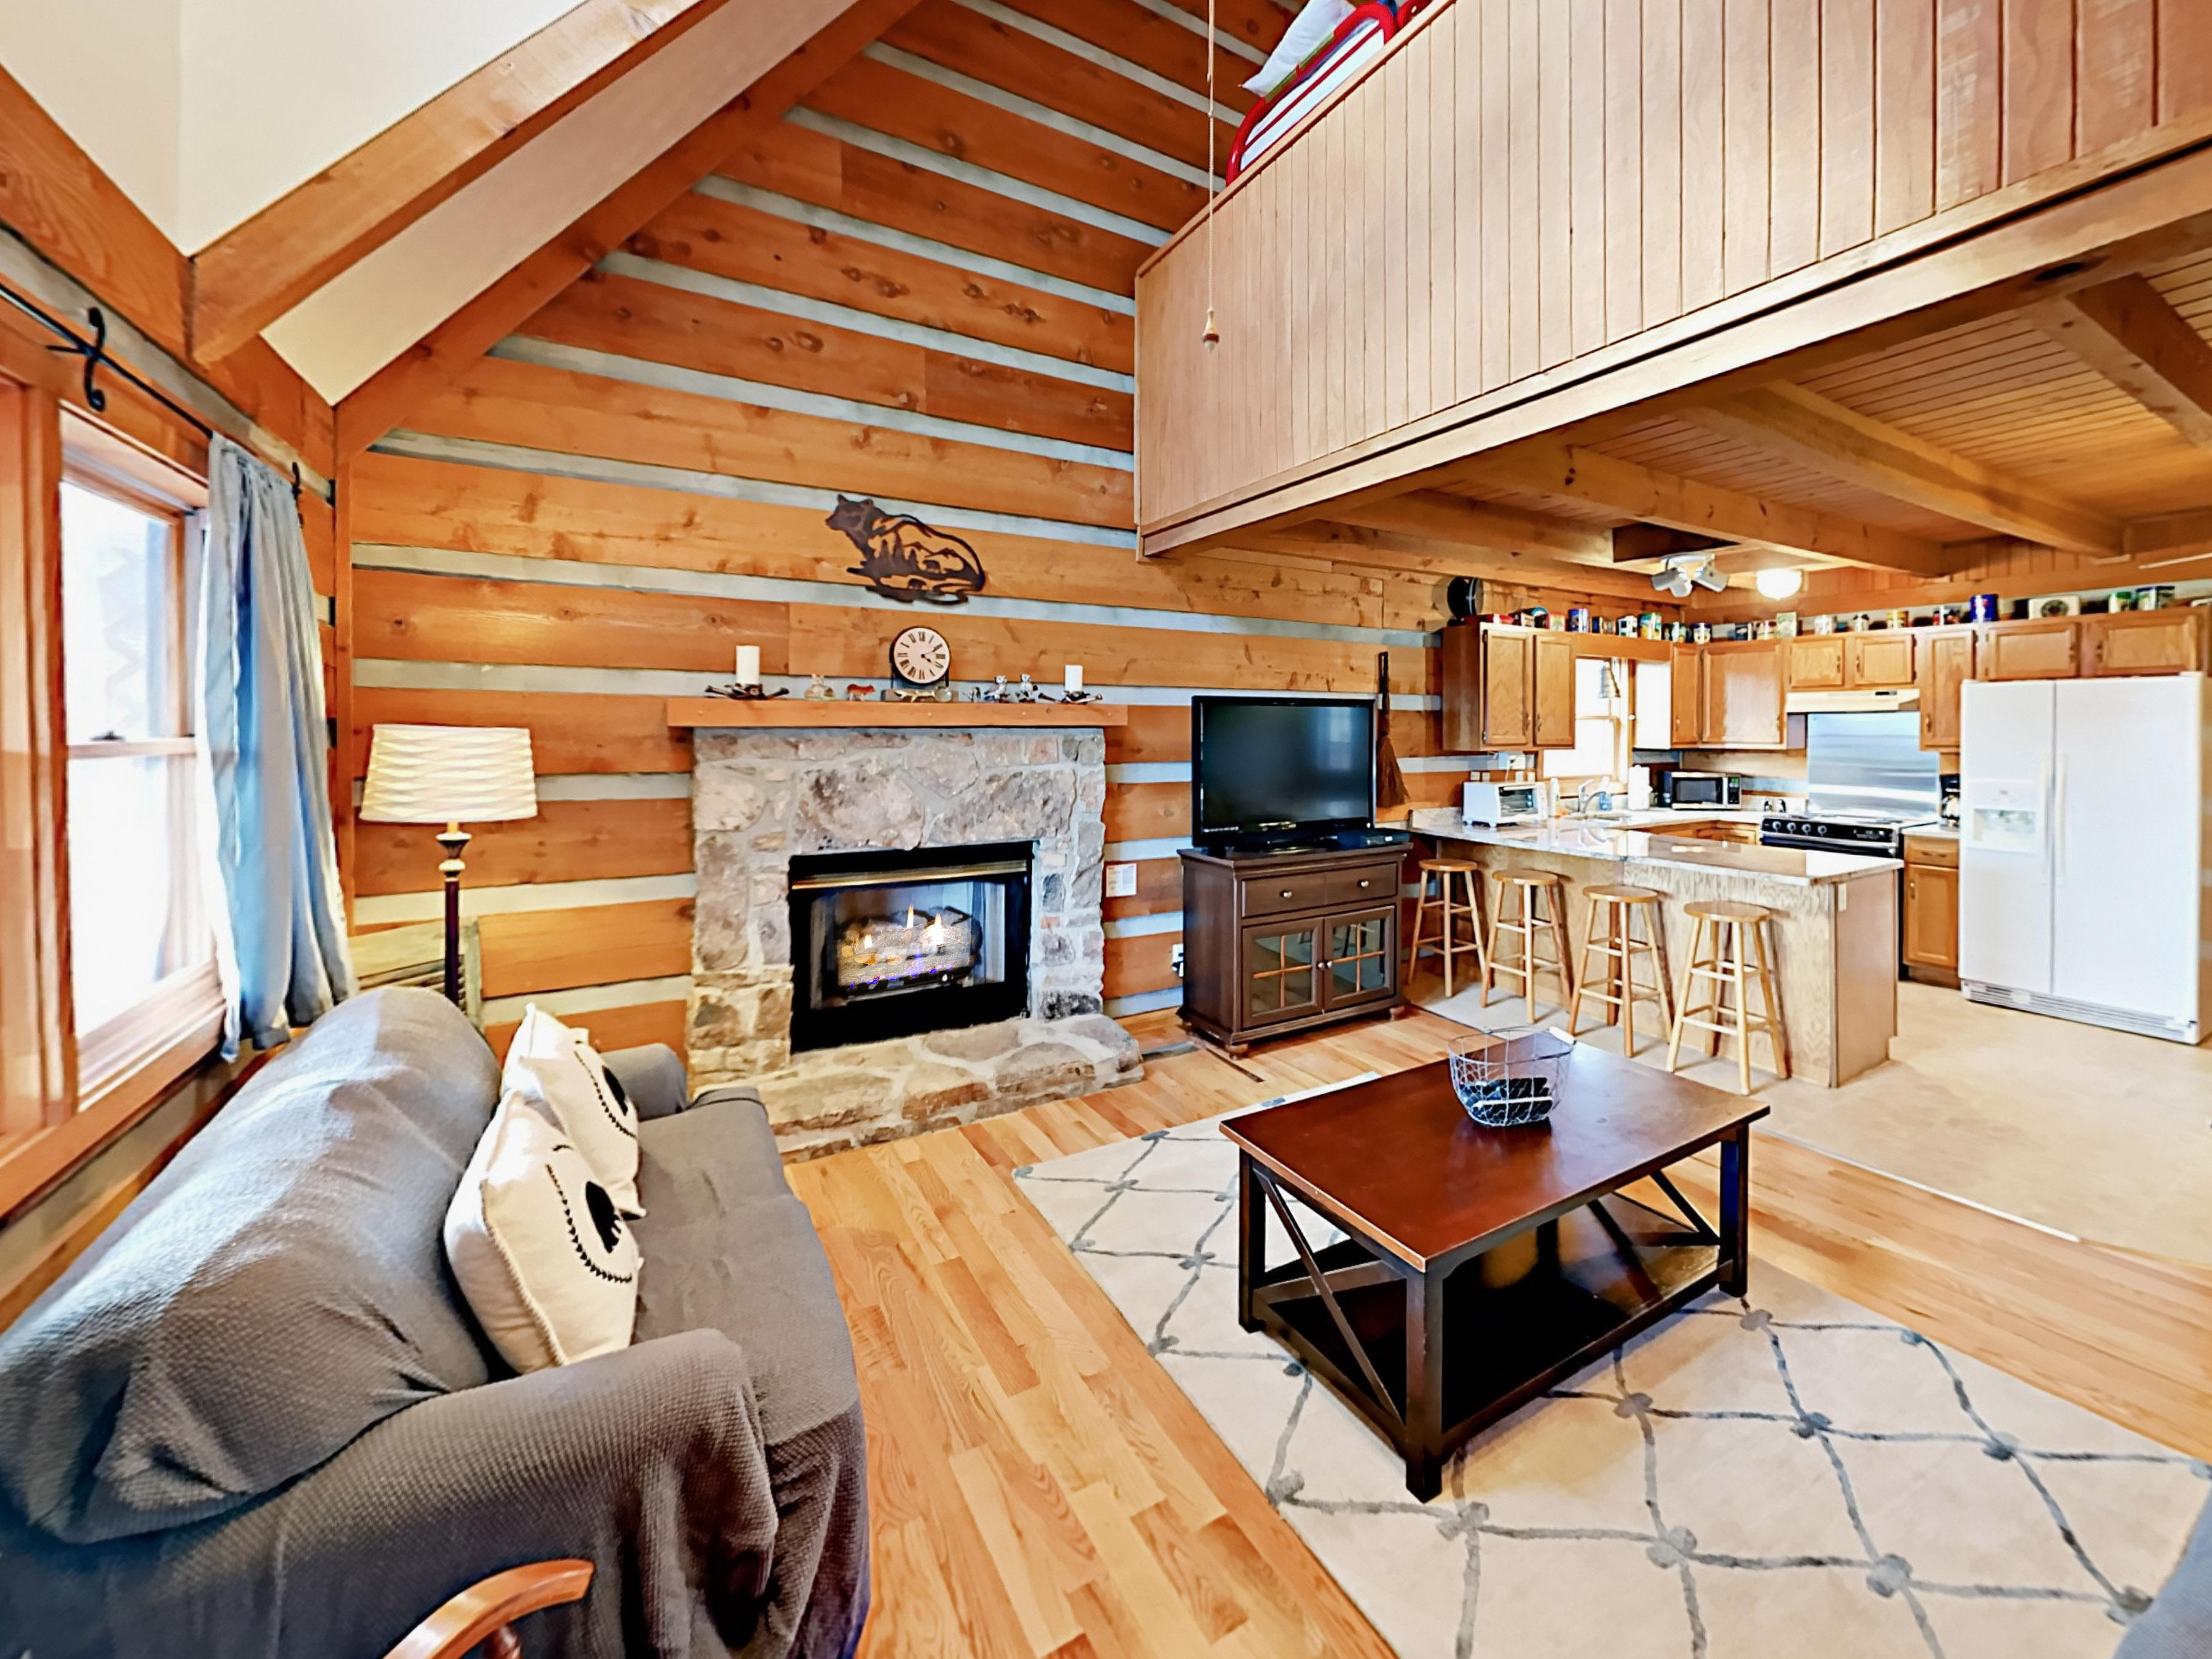 Oversize living area with soaring ceilings, gas fireplace, and warm wood tones.